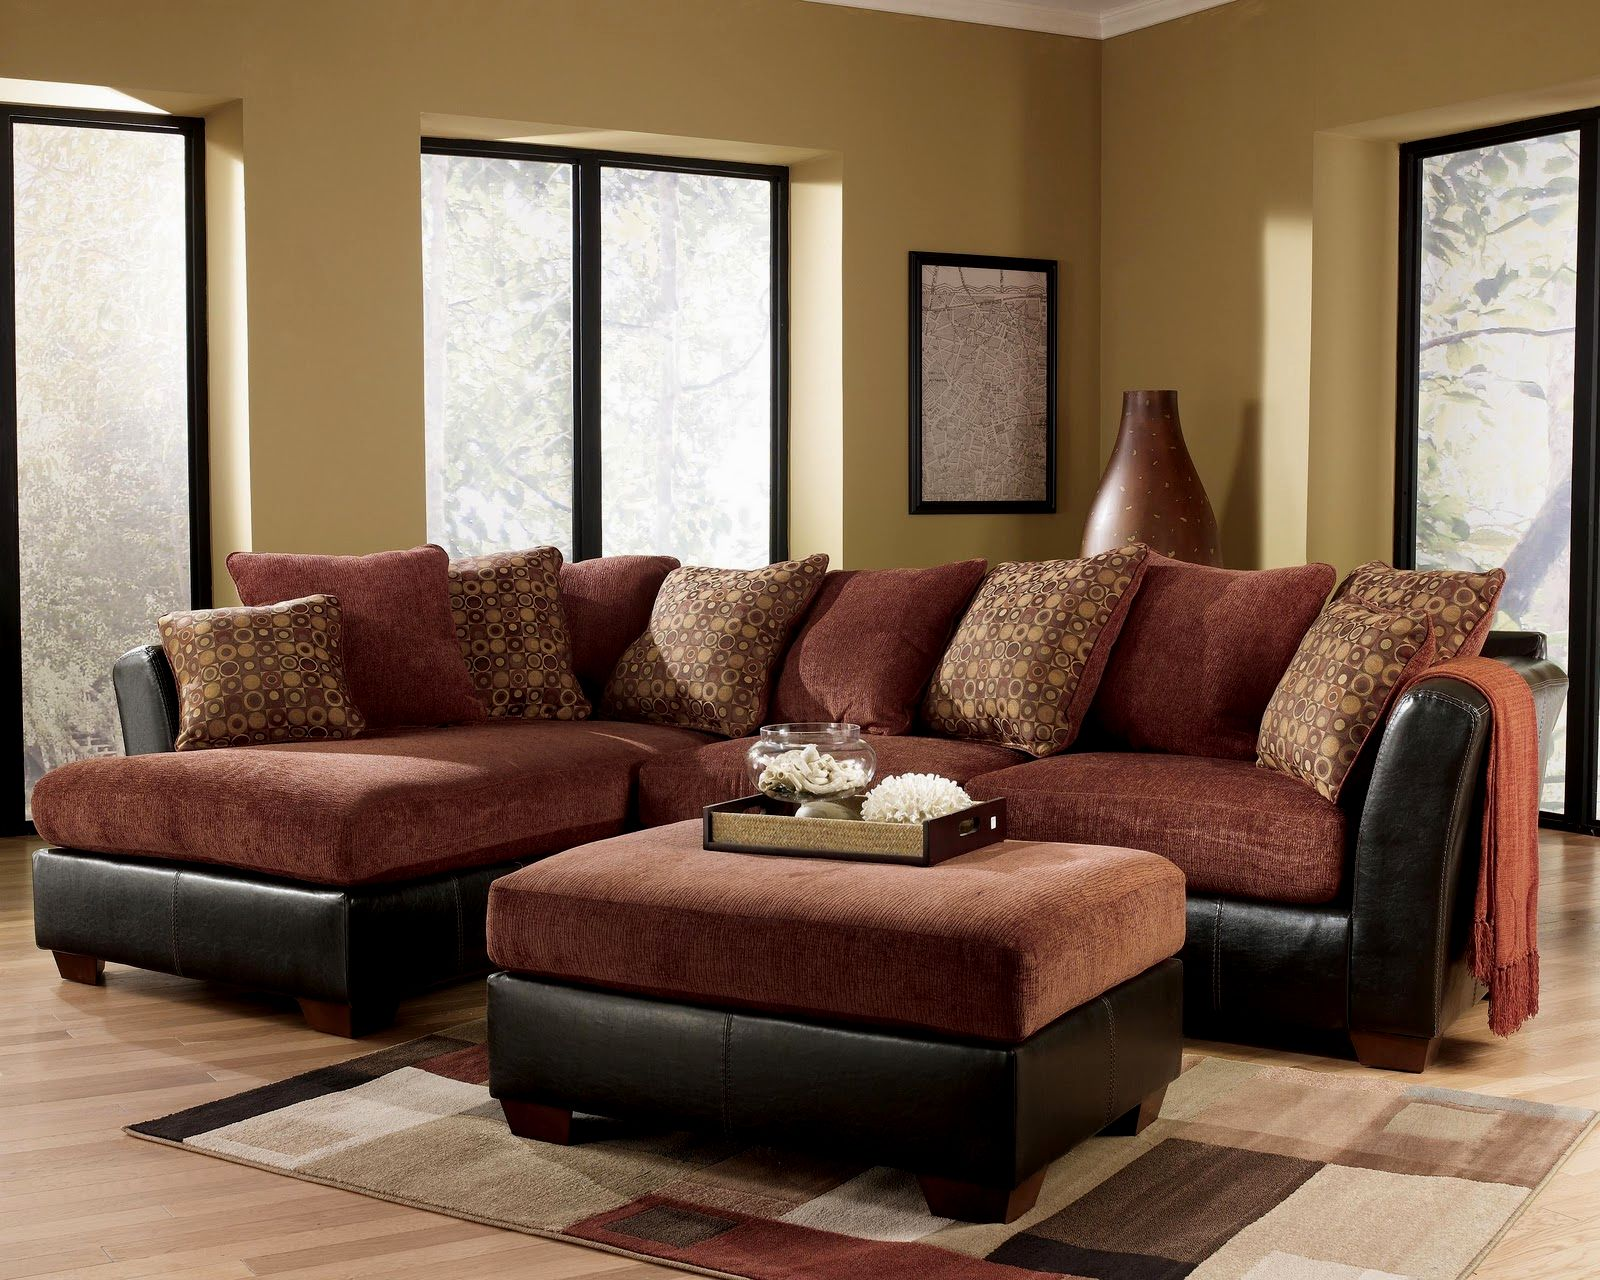 beautiful small sectional sofas for small spaces image-Contemporary Small Sectional sofas for Small Spaces Ideas